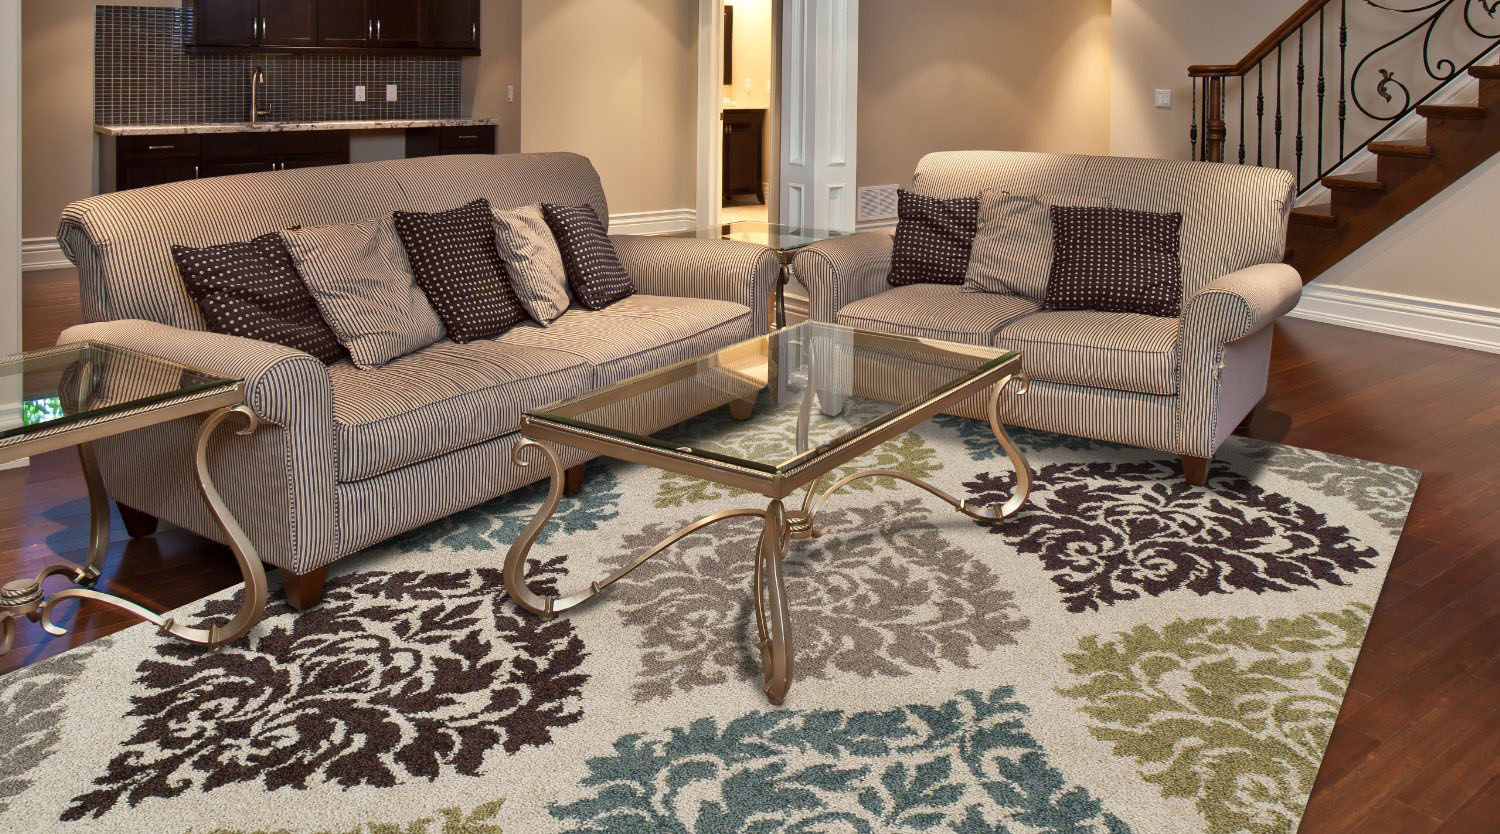 Accent Floor Area Rugs Add Warmth And Make The Gaps Between Furniture